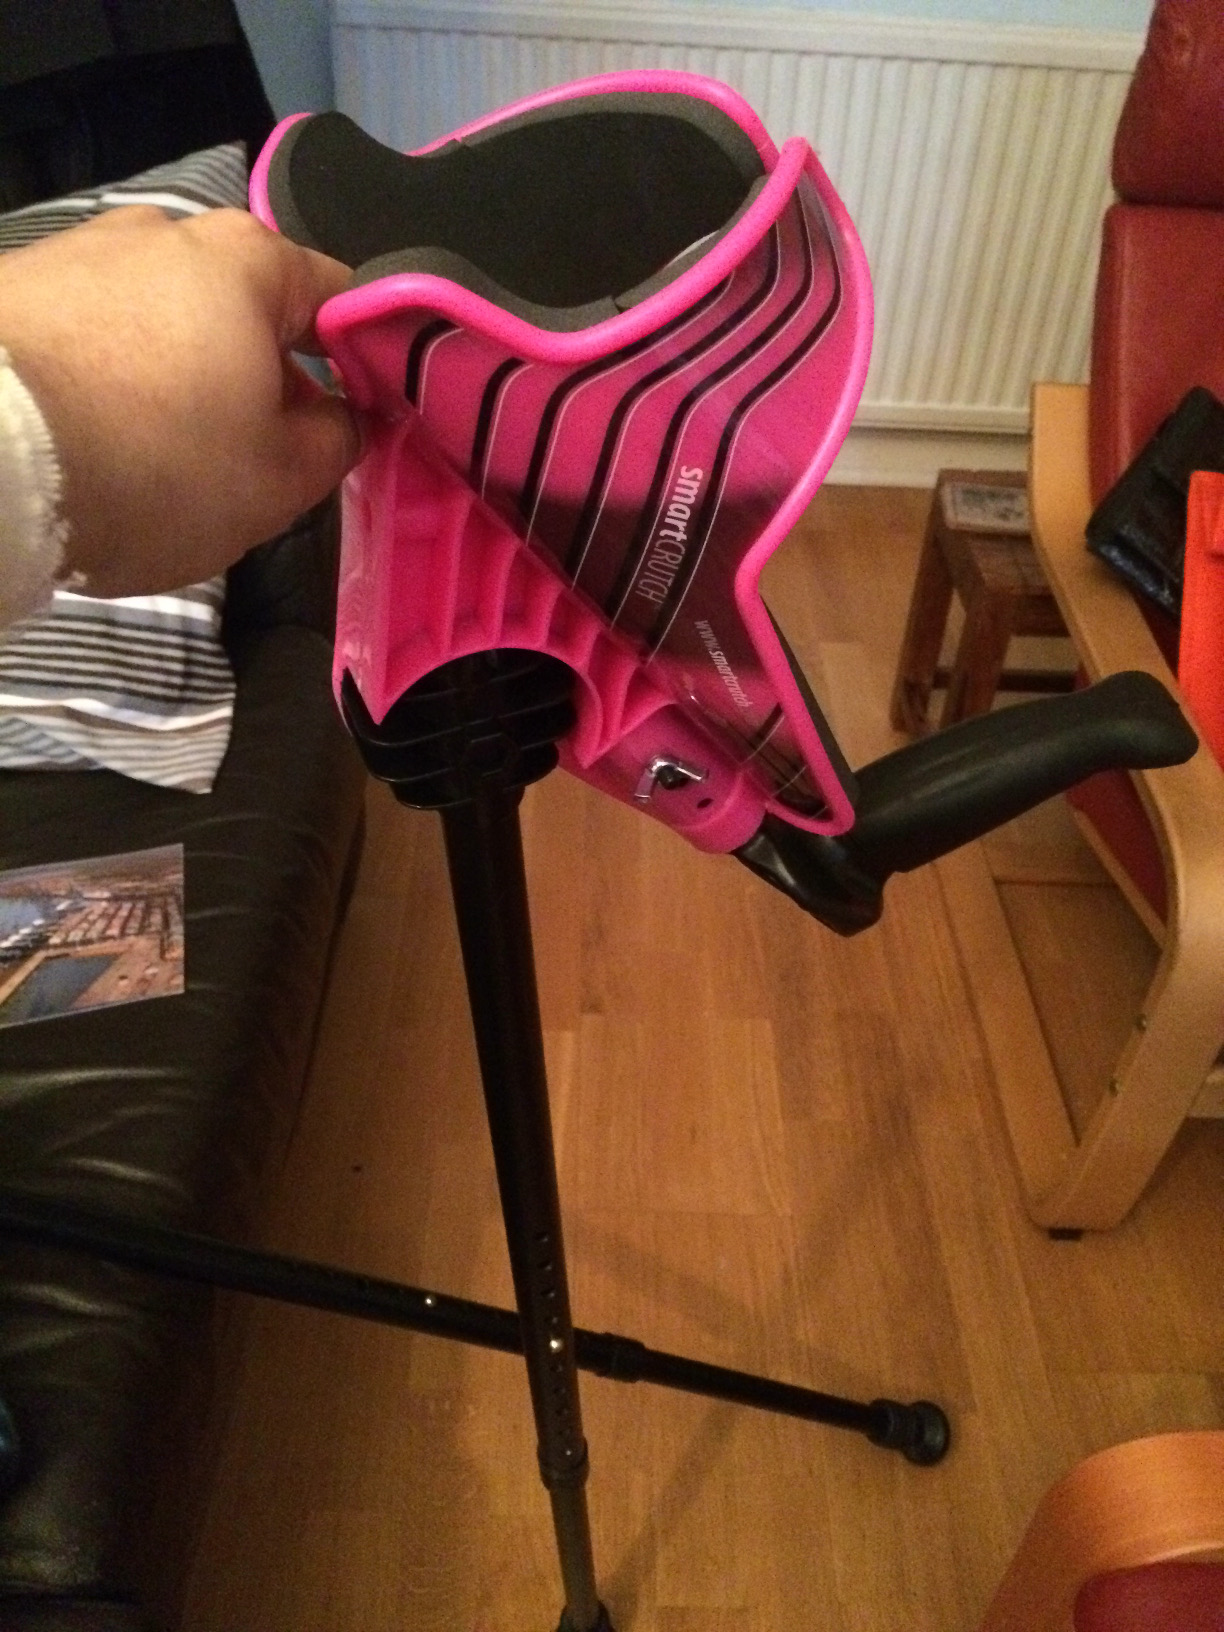 My amazing pink SmartCRUTCH and how it has helped me